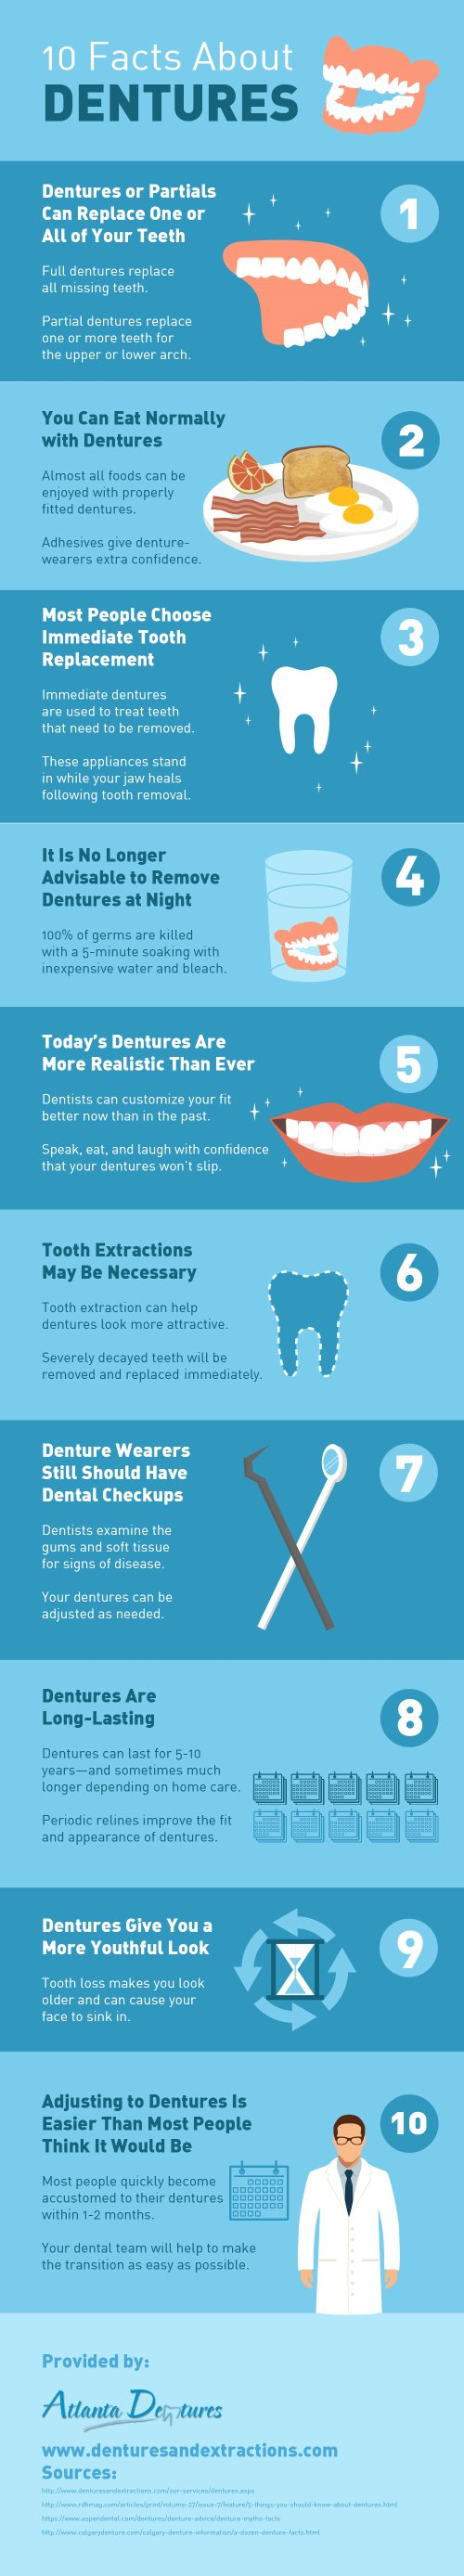 10 Facts About Dentures